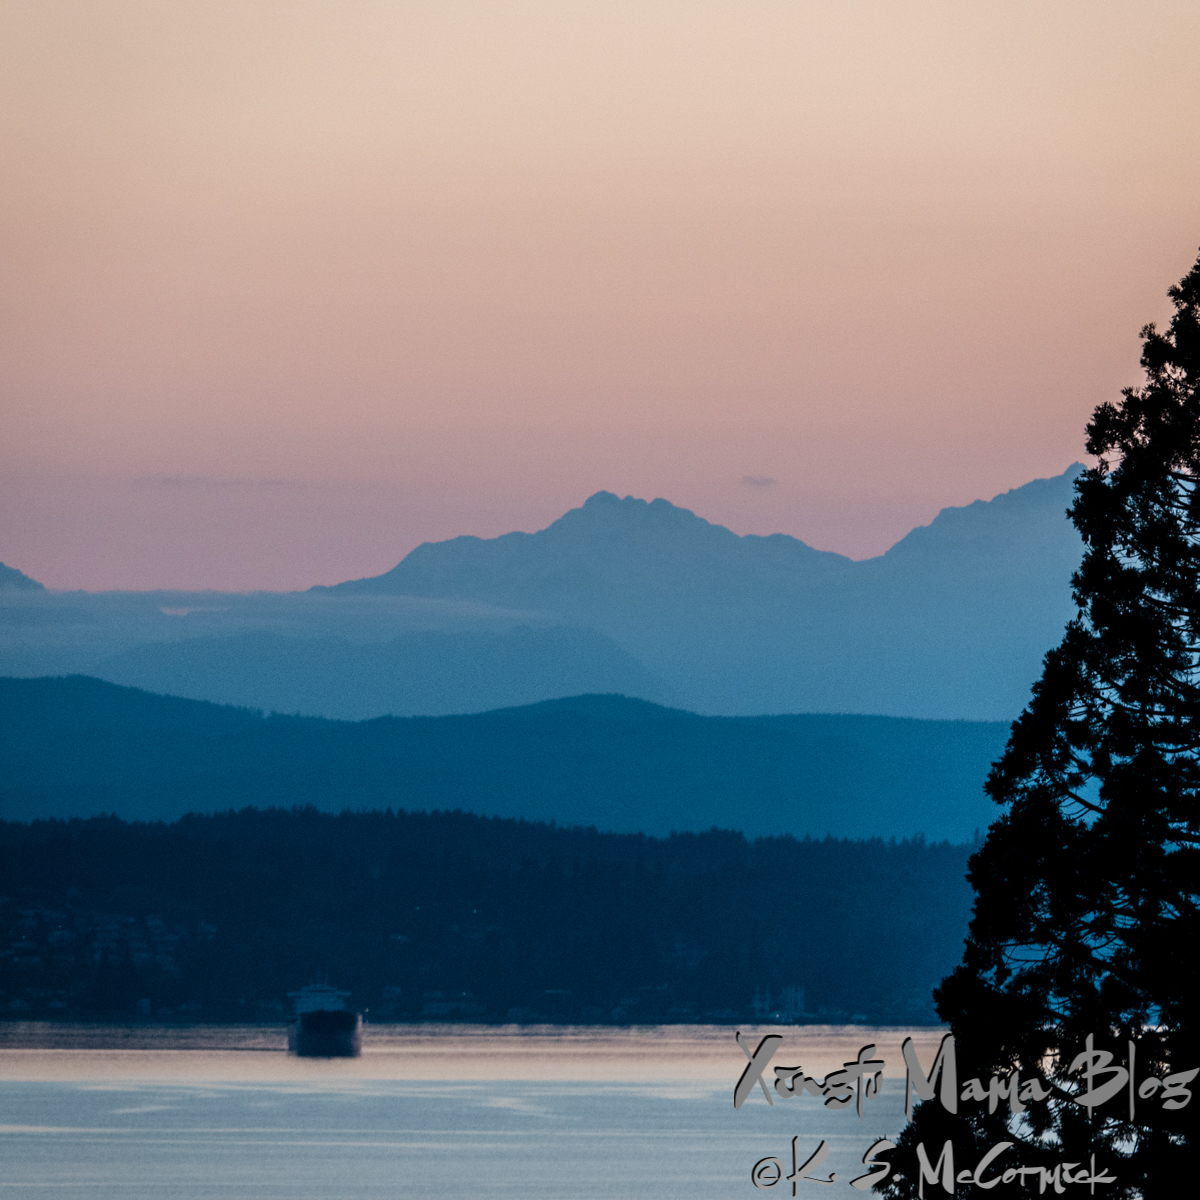 The hills of Kitsap Peninsula and Olympic Mountains appear blue at dusk.